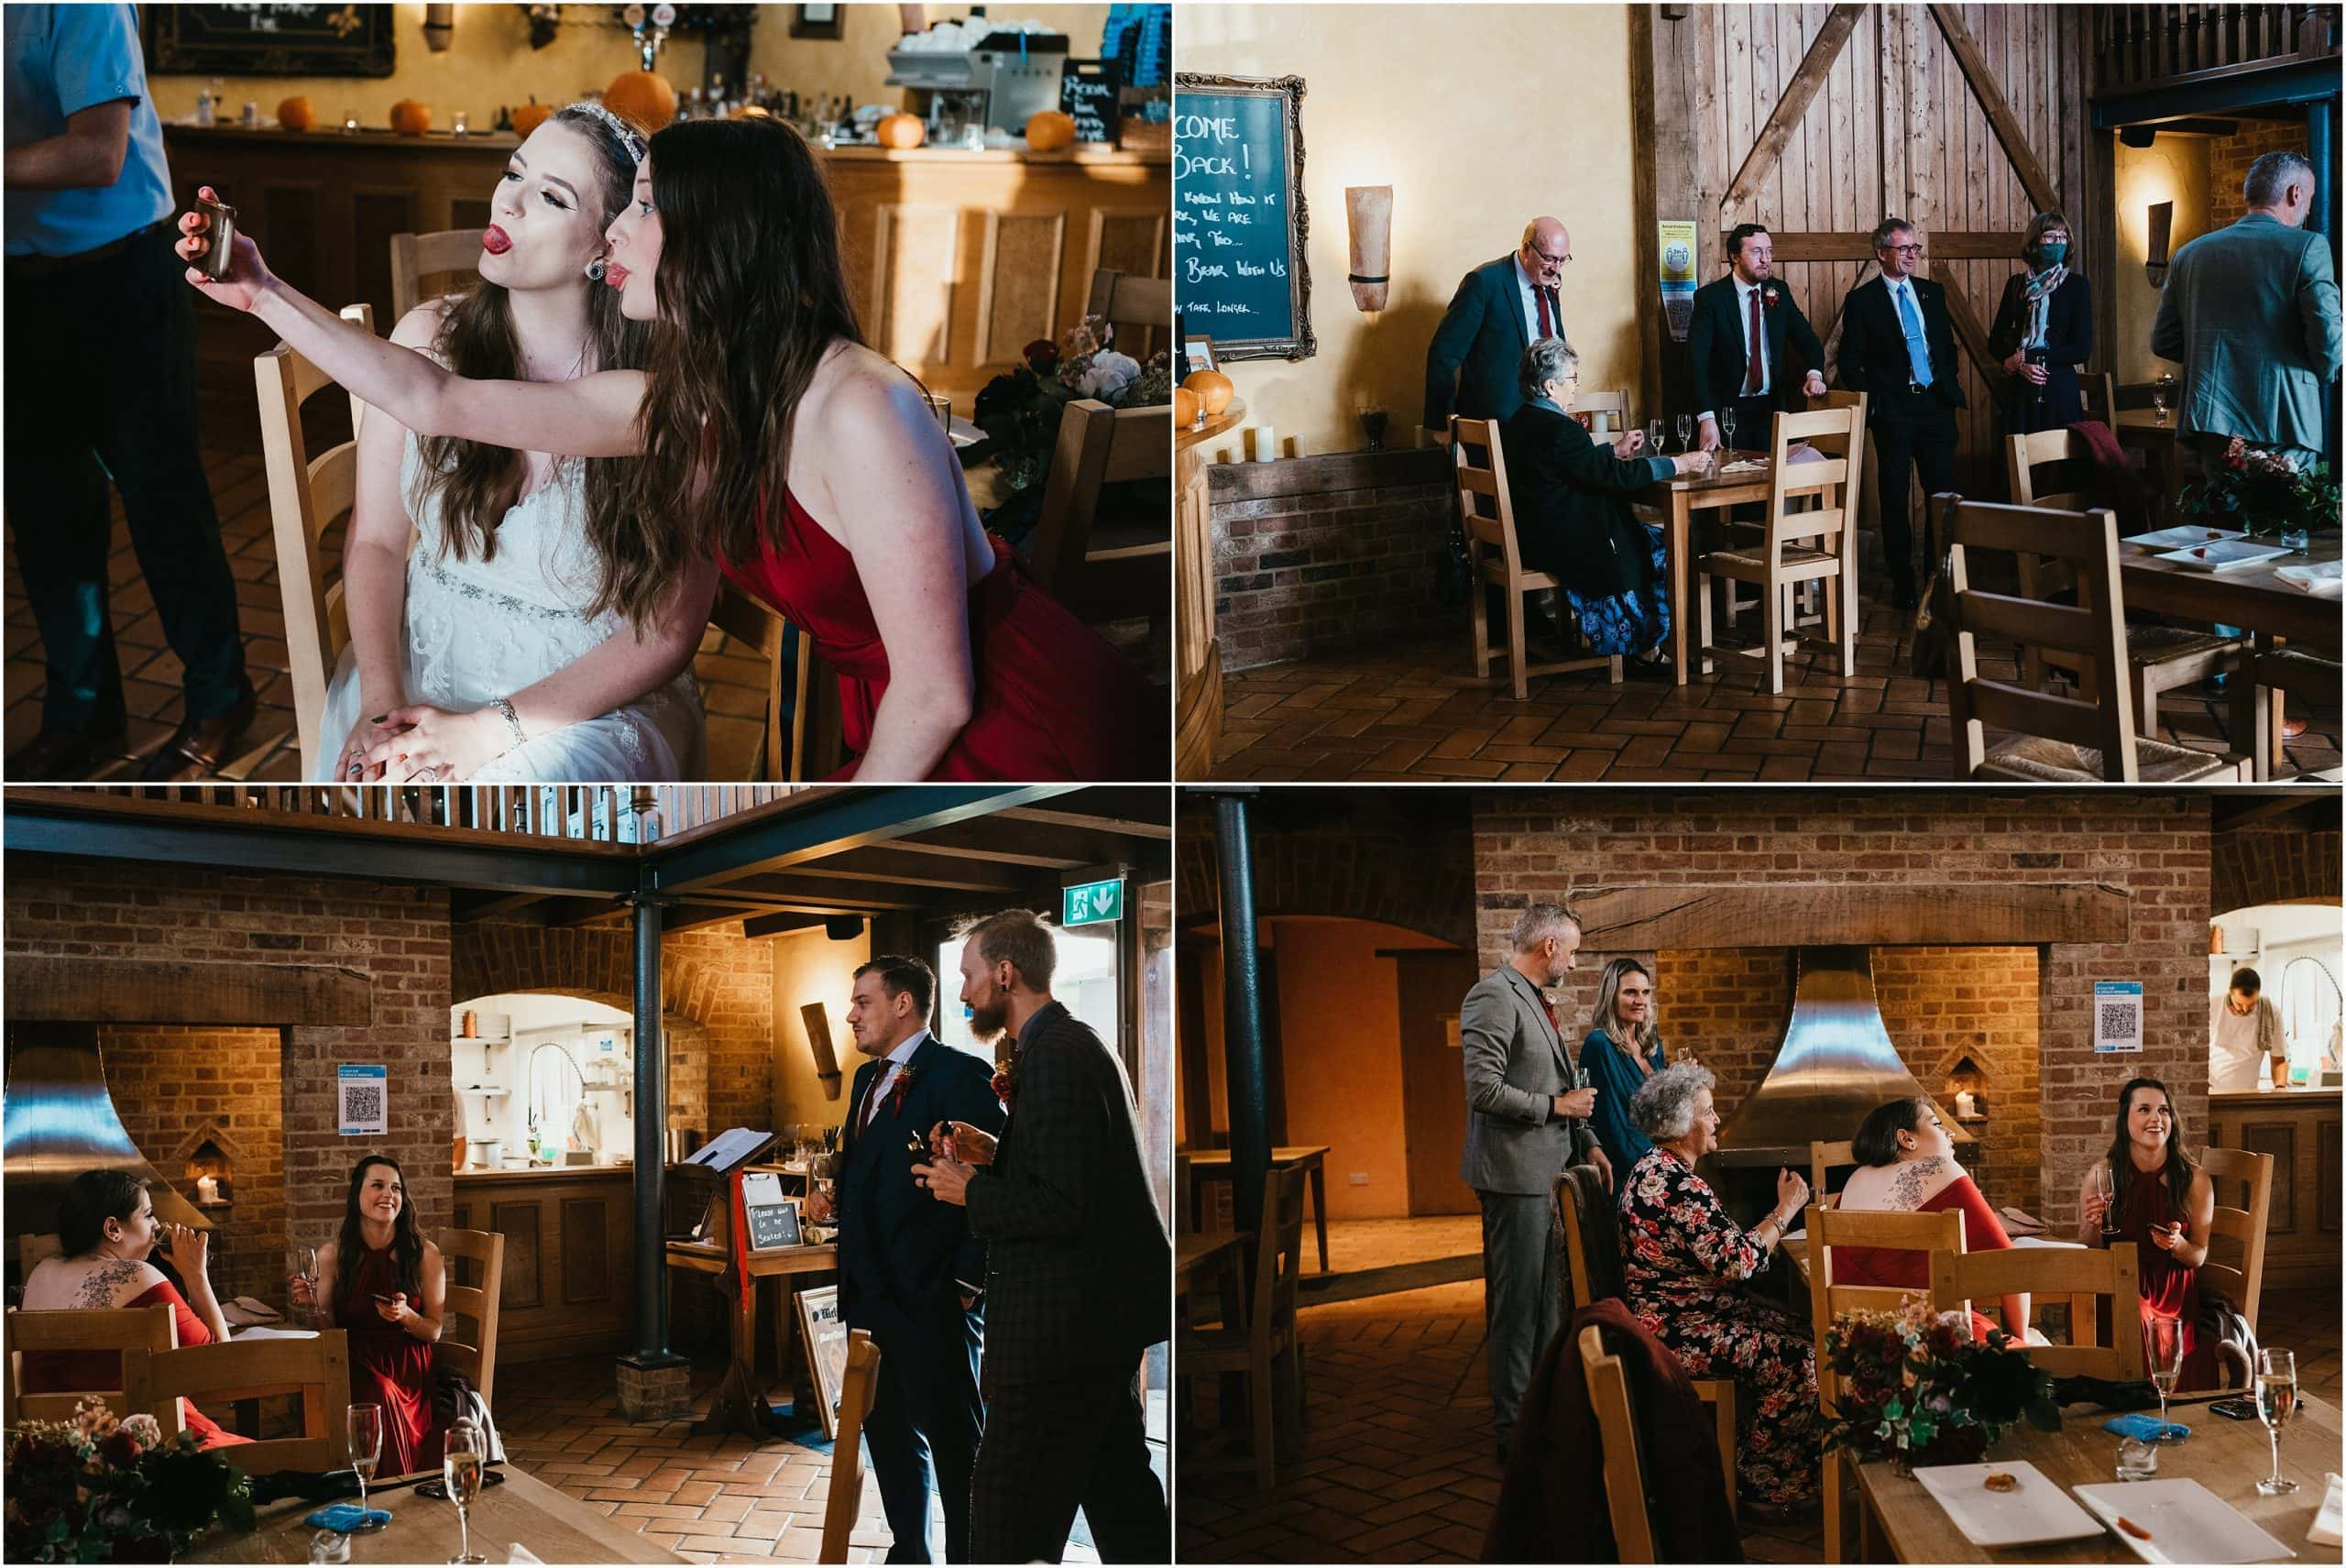 Wedding reception at The Barns Restaurant Pidley